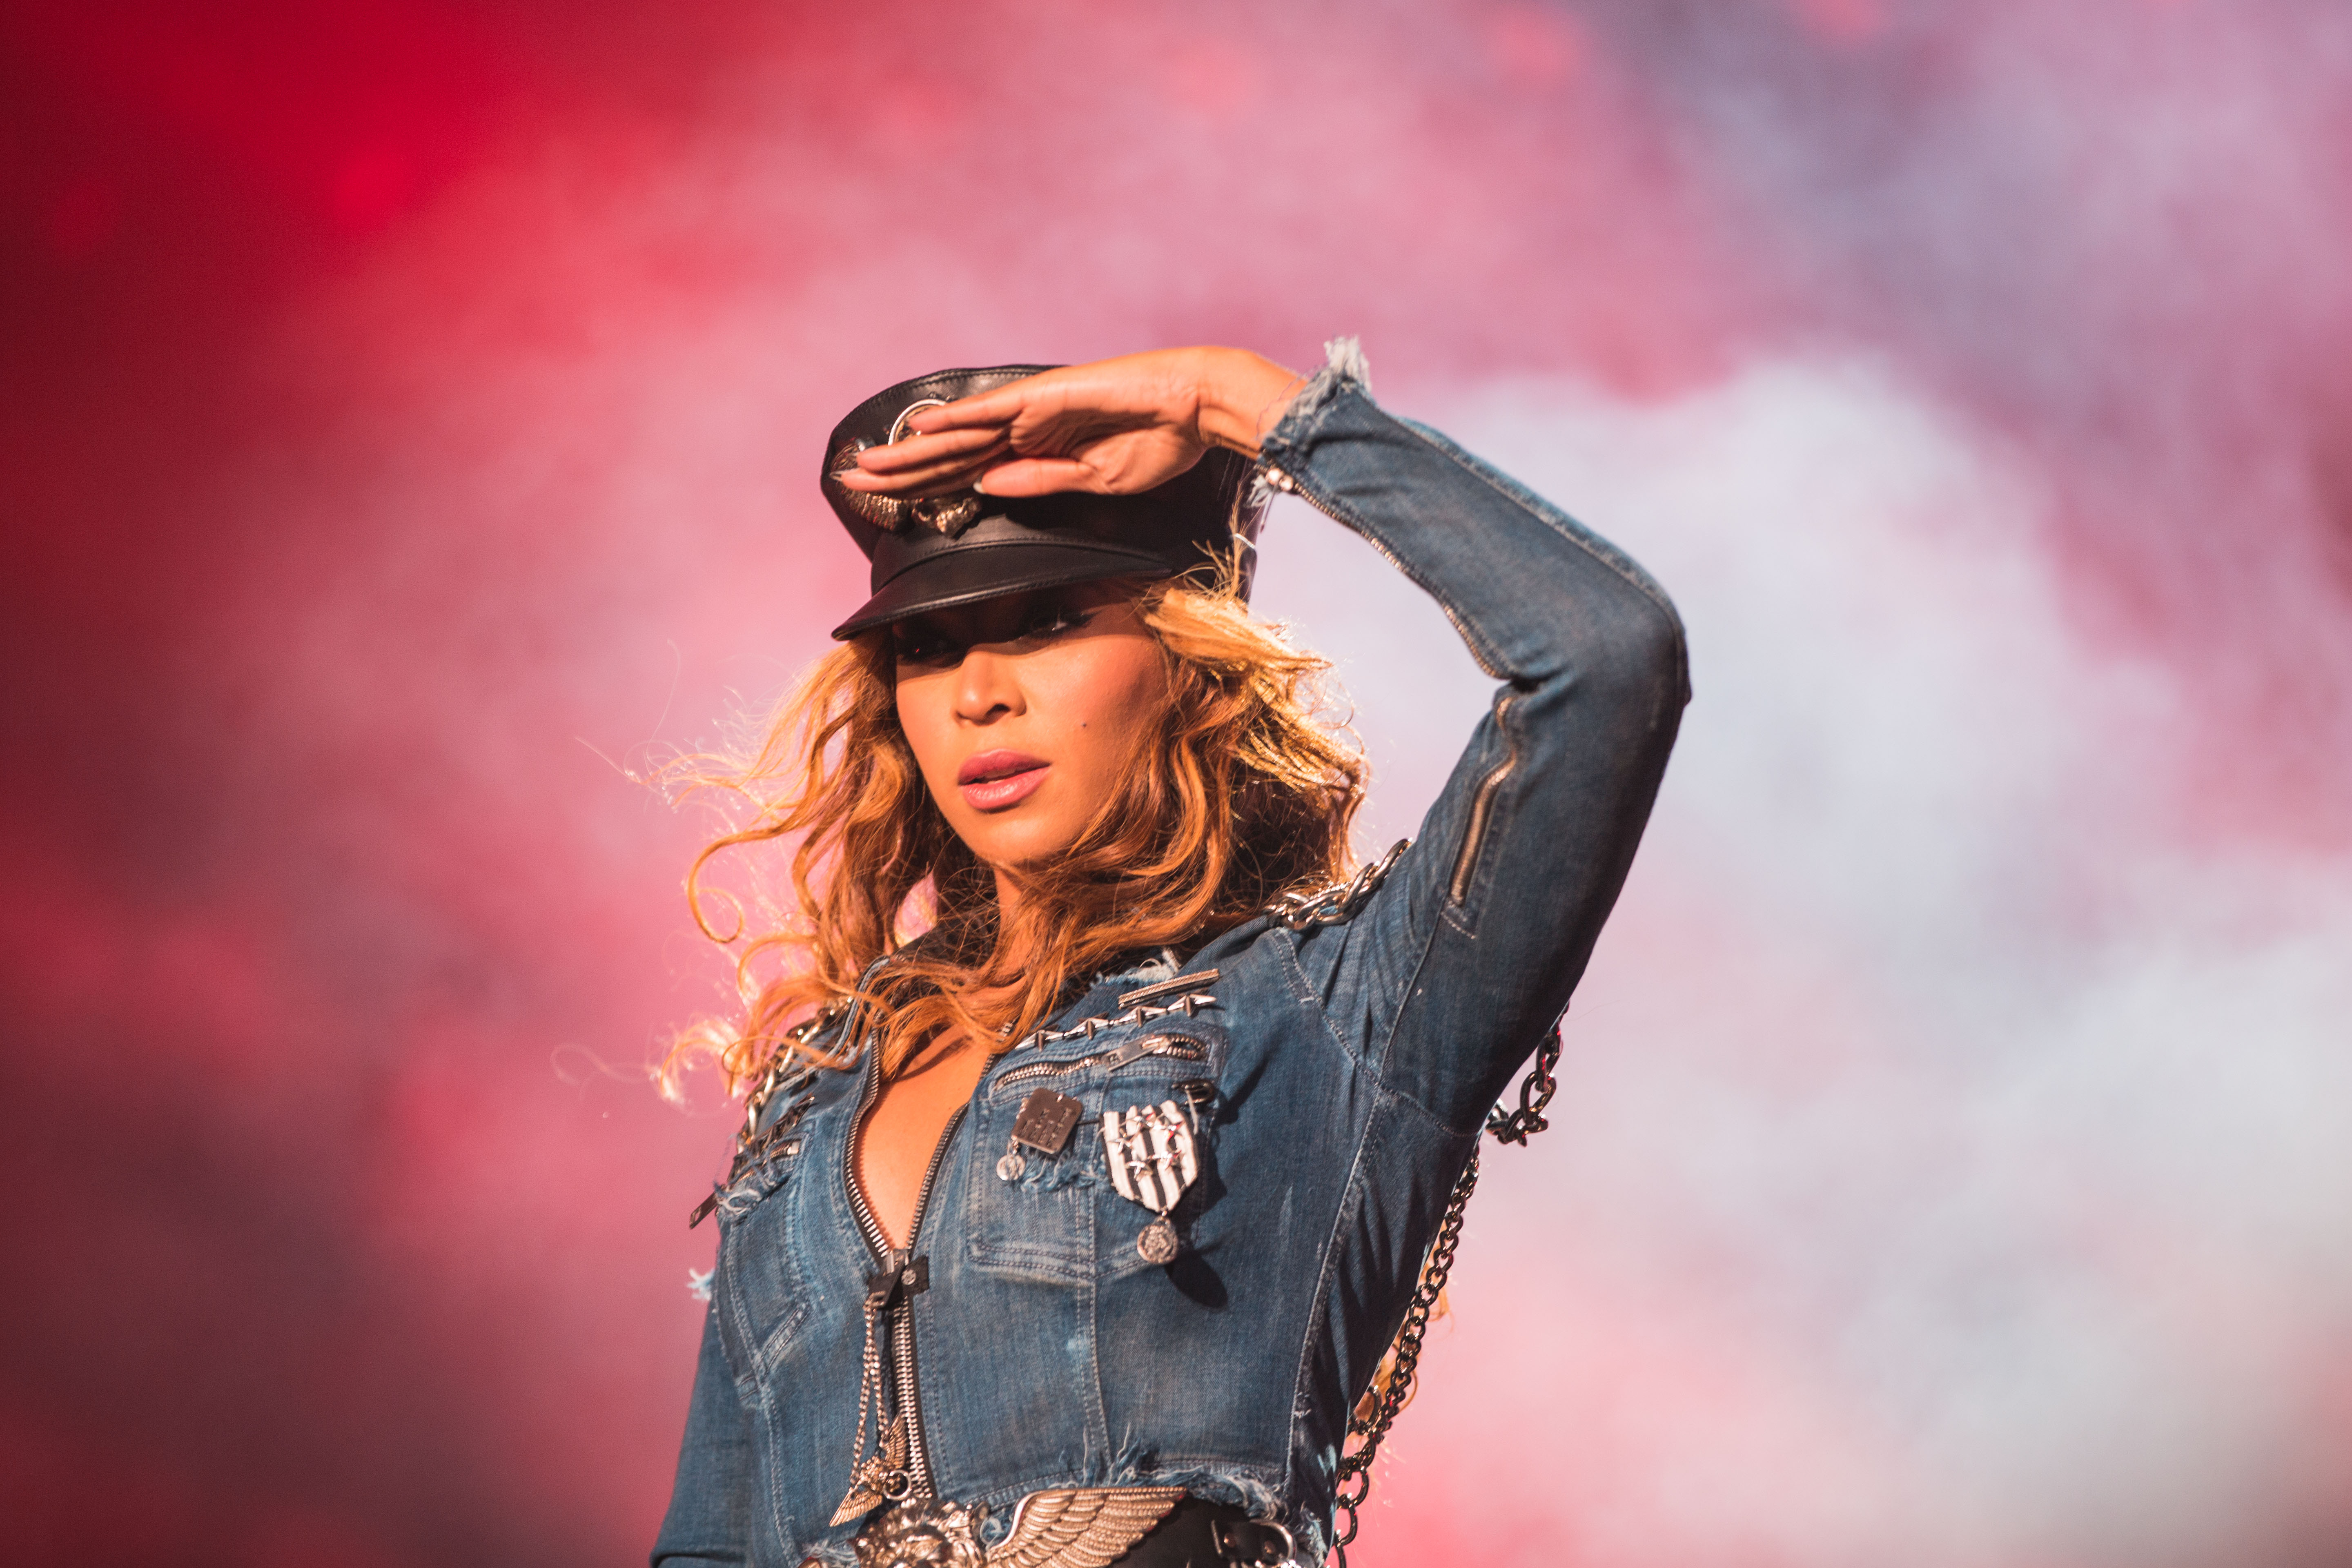 Beyonce performs during the On The Run tour at Investors Group Field on July 27, 2014 in Winnipeg, Manitoba, Canada.